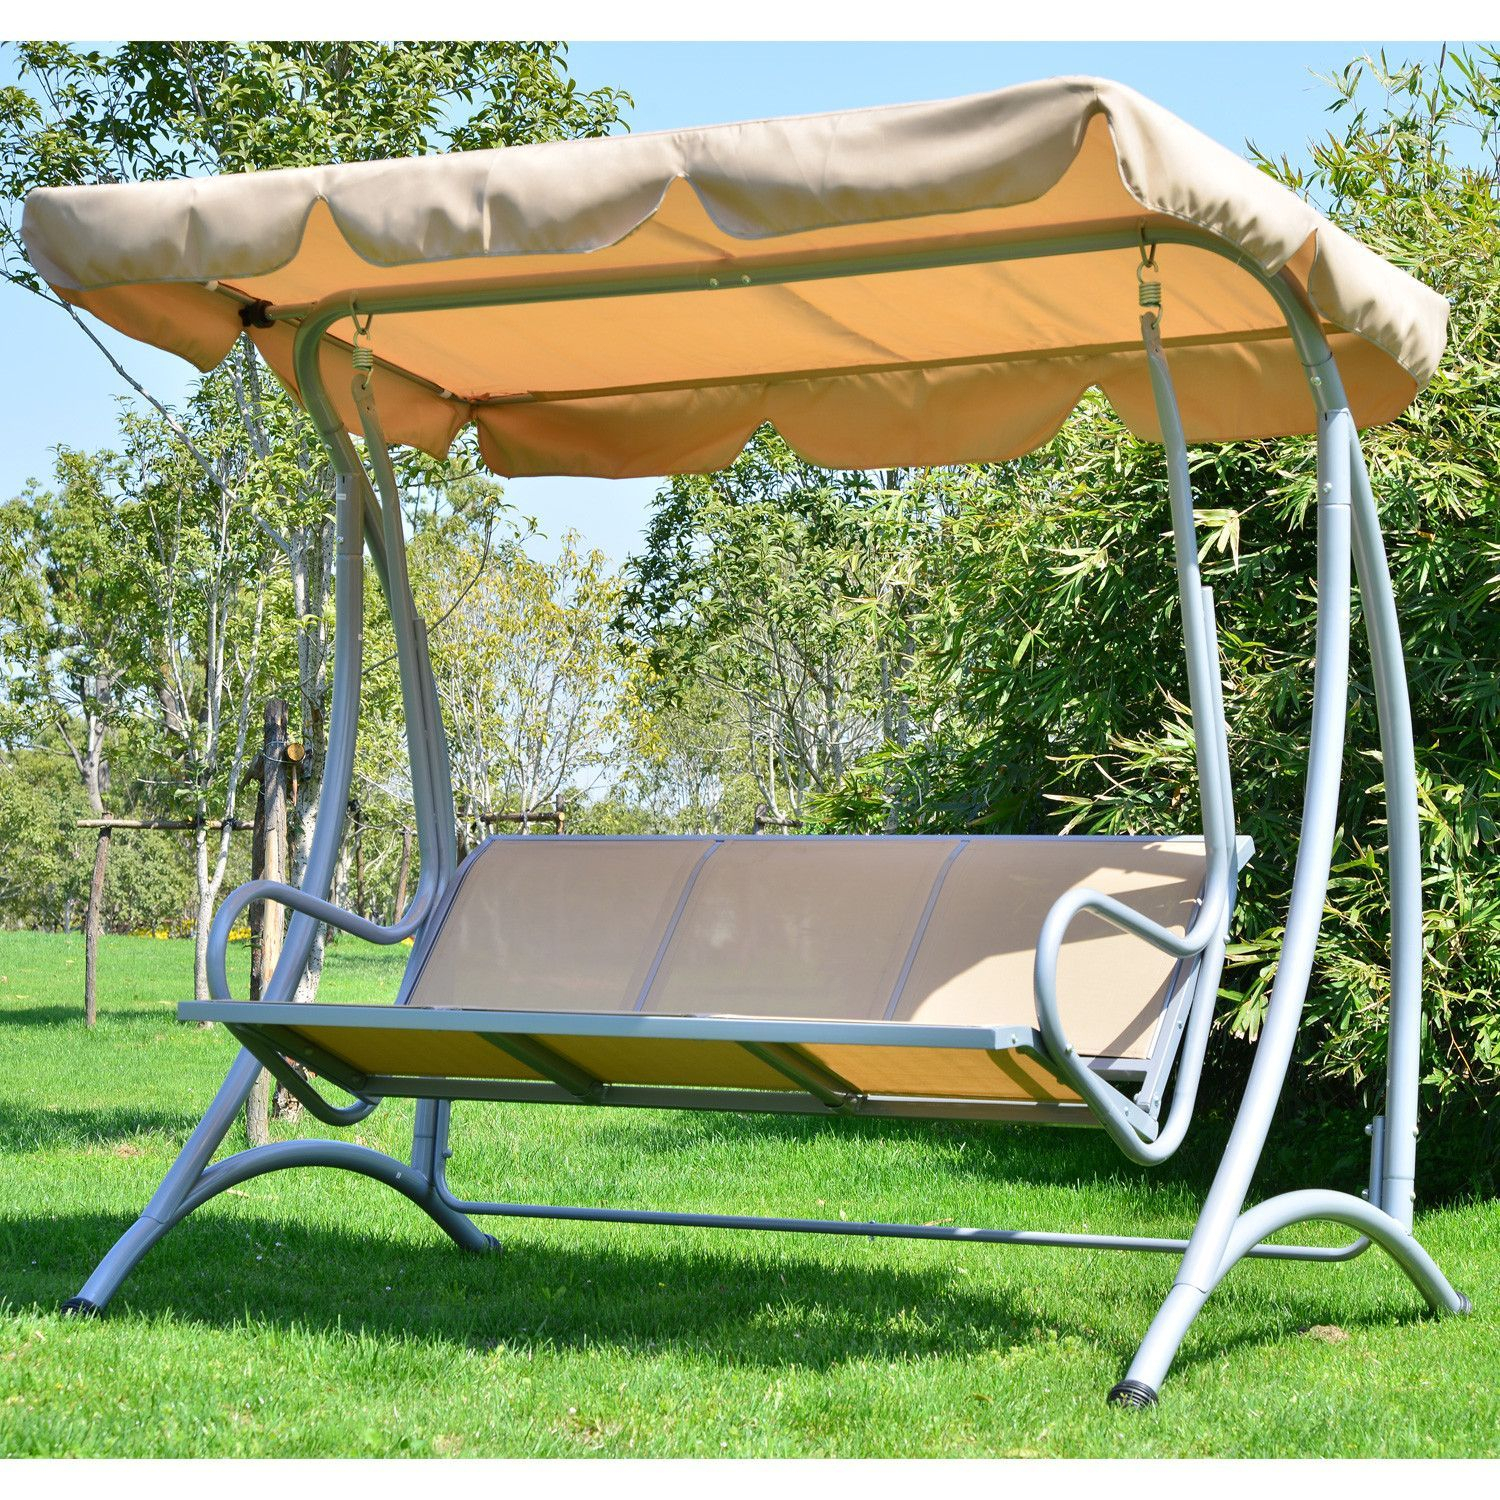 Outsunny Patio Swing With Stand | Products In 2019 | Outdoor Within Canopy Patio Porch Swing With Stand (View 18 of 25)